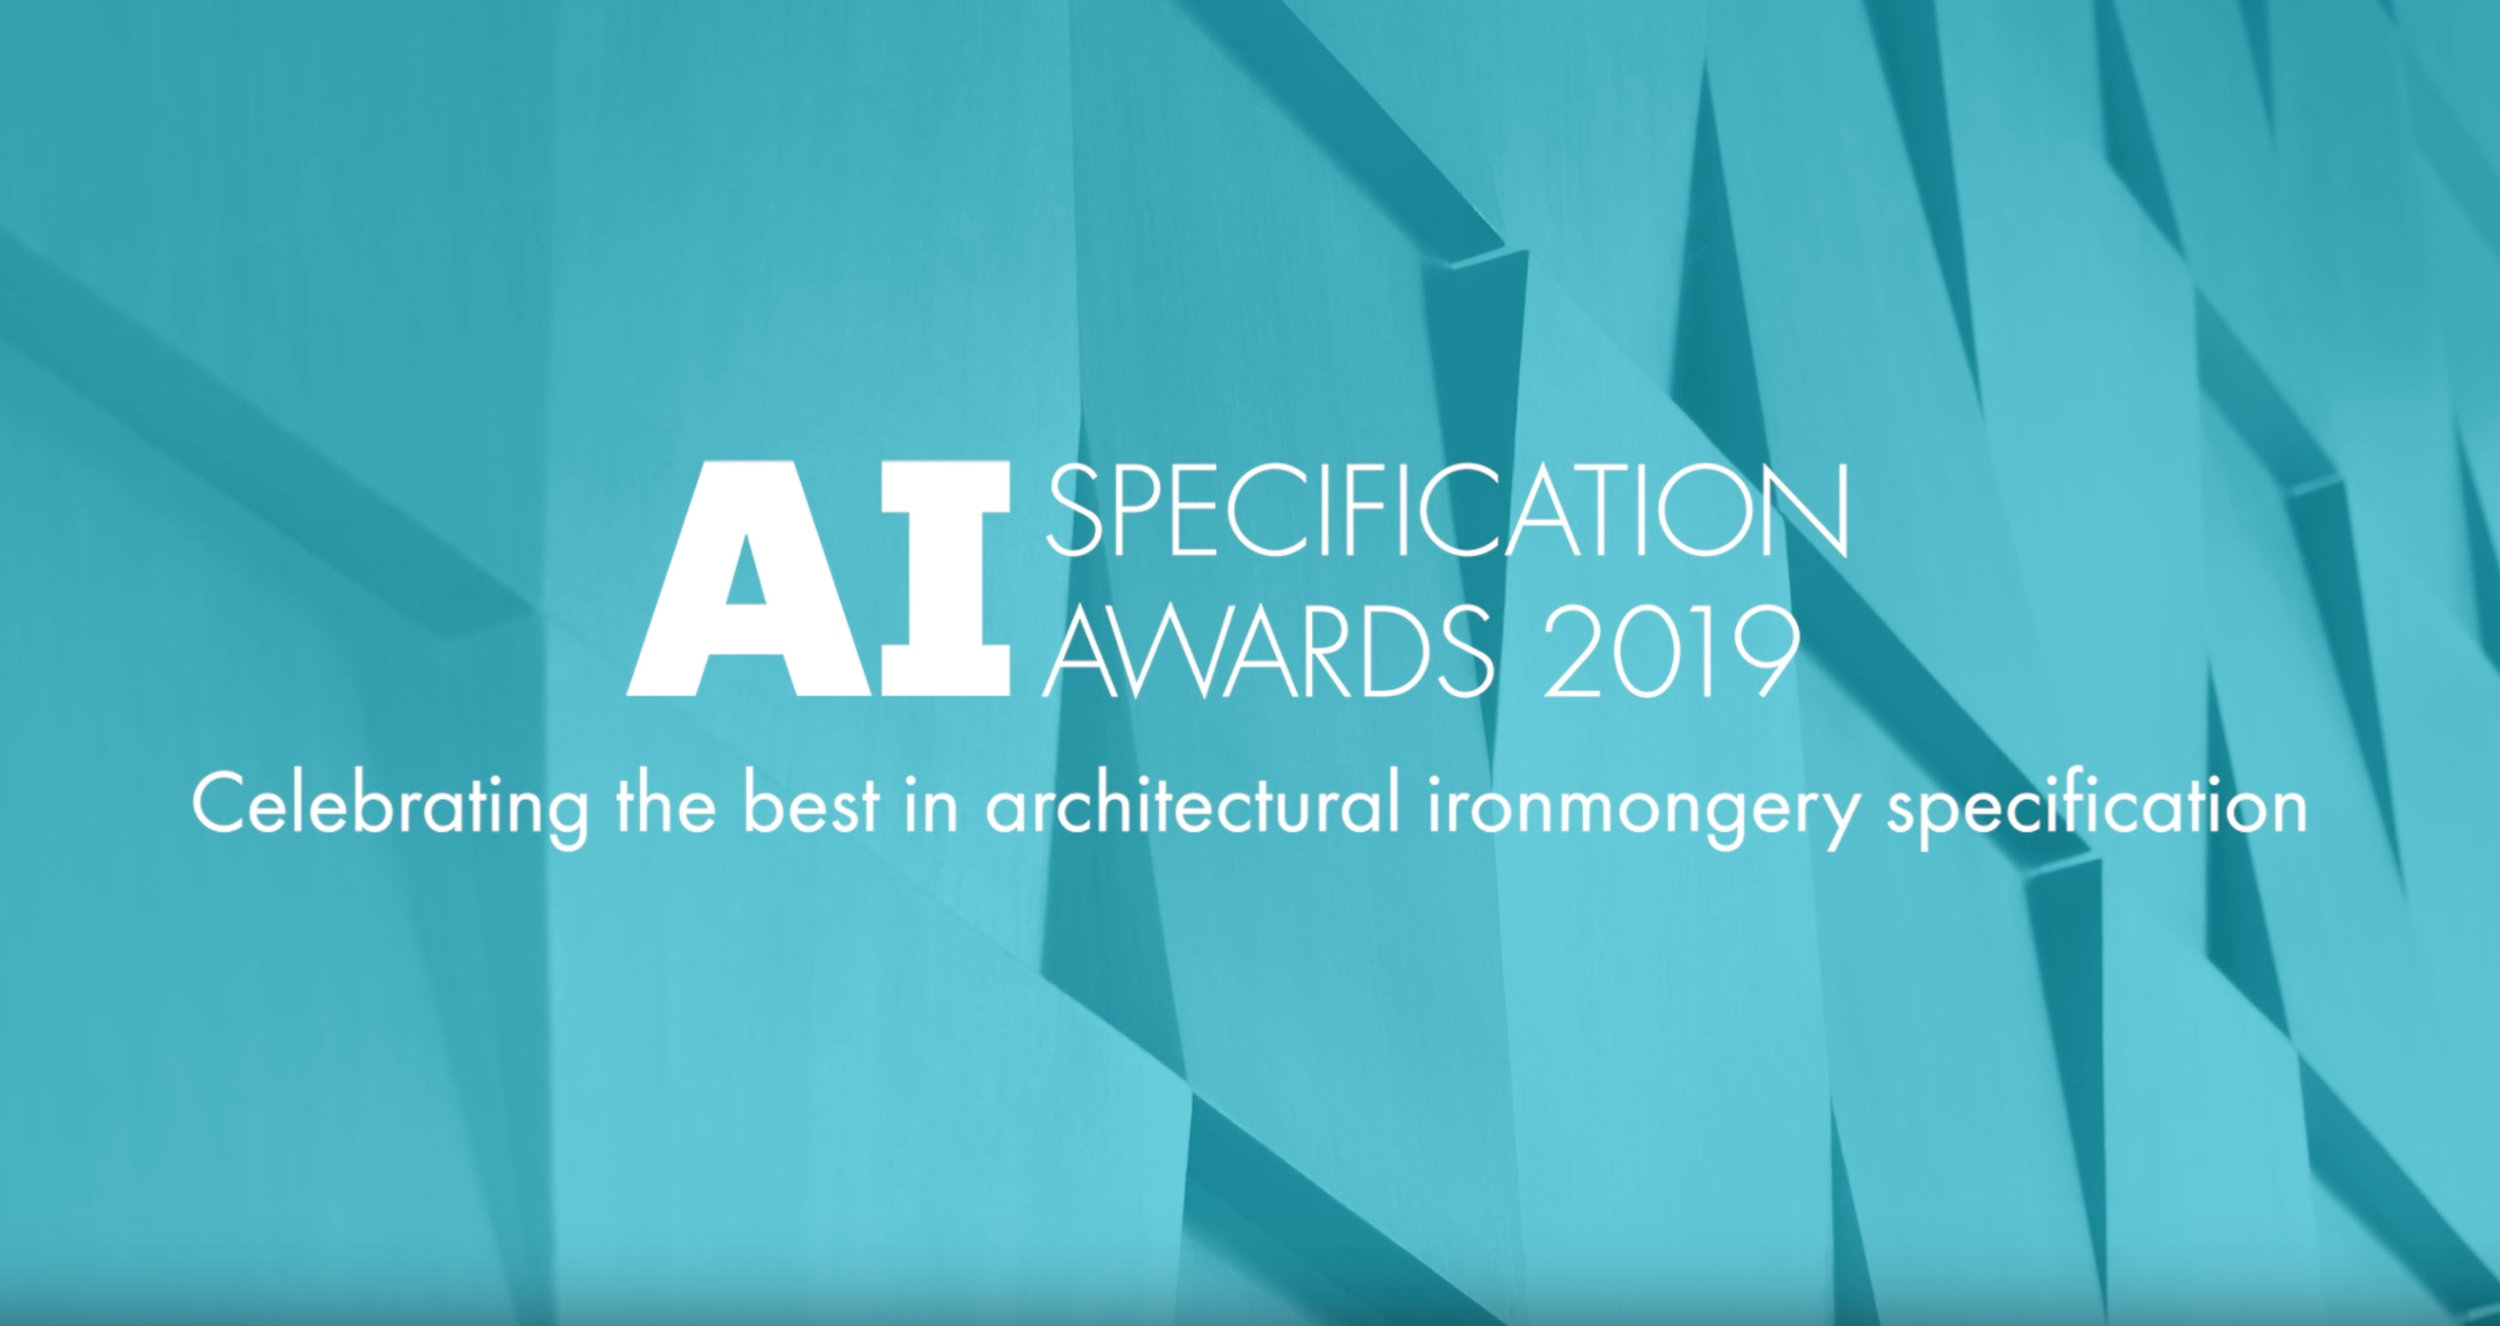 (206) WINNER OF WINNERS - AI Specification Awards 2019 - YouTube 2019-03-26 11-05-55.jpg